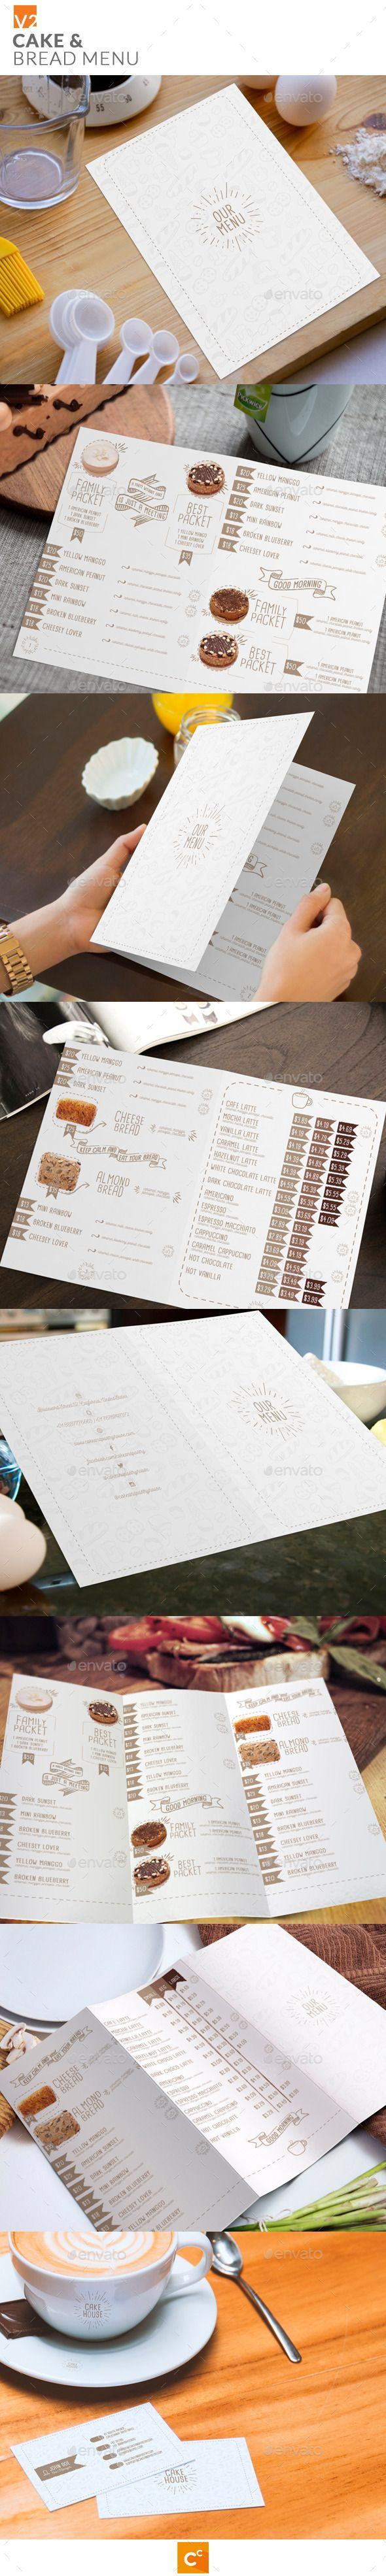 Cake & Bread Menu Template #design Download: graphicriver.net/...